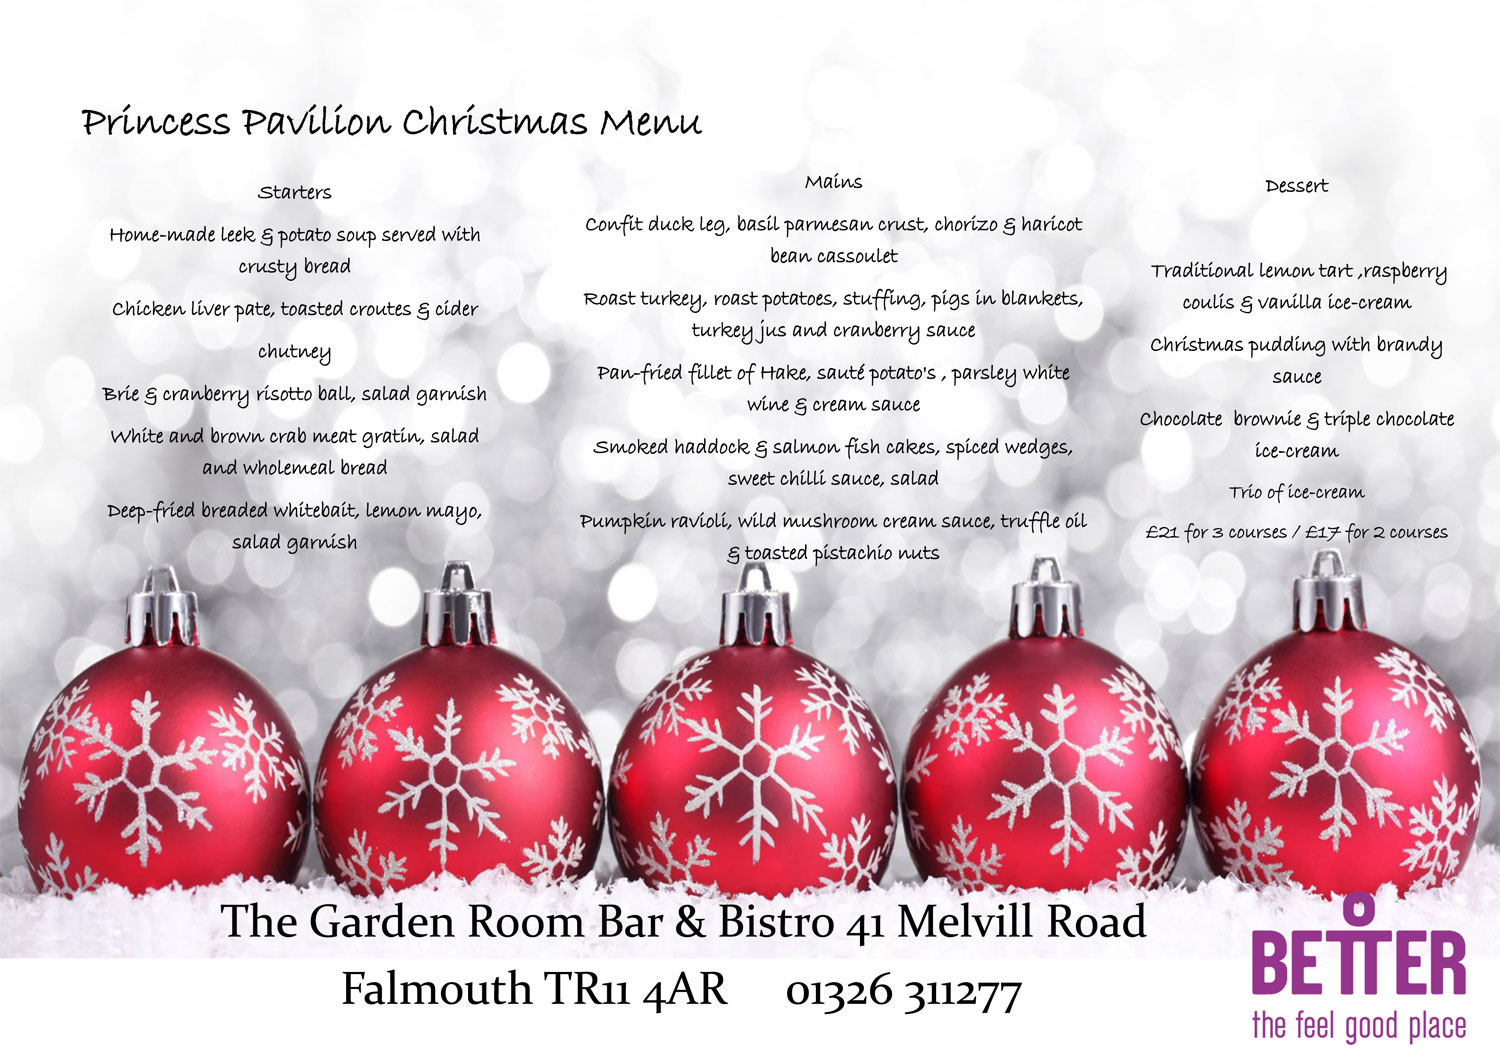 Enjoy Princess Pavilion's fabulous Festive Menu£21 for 3 courses / £17 for 2 Save £'s when you book at the same time as you buy your tickets! call 01326 211 222